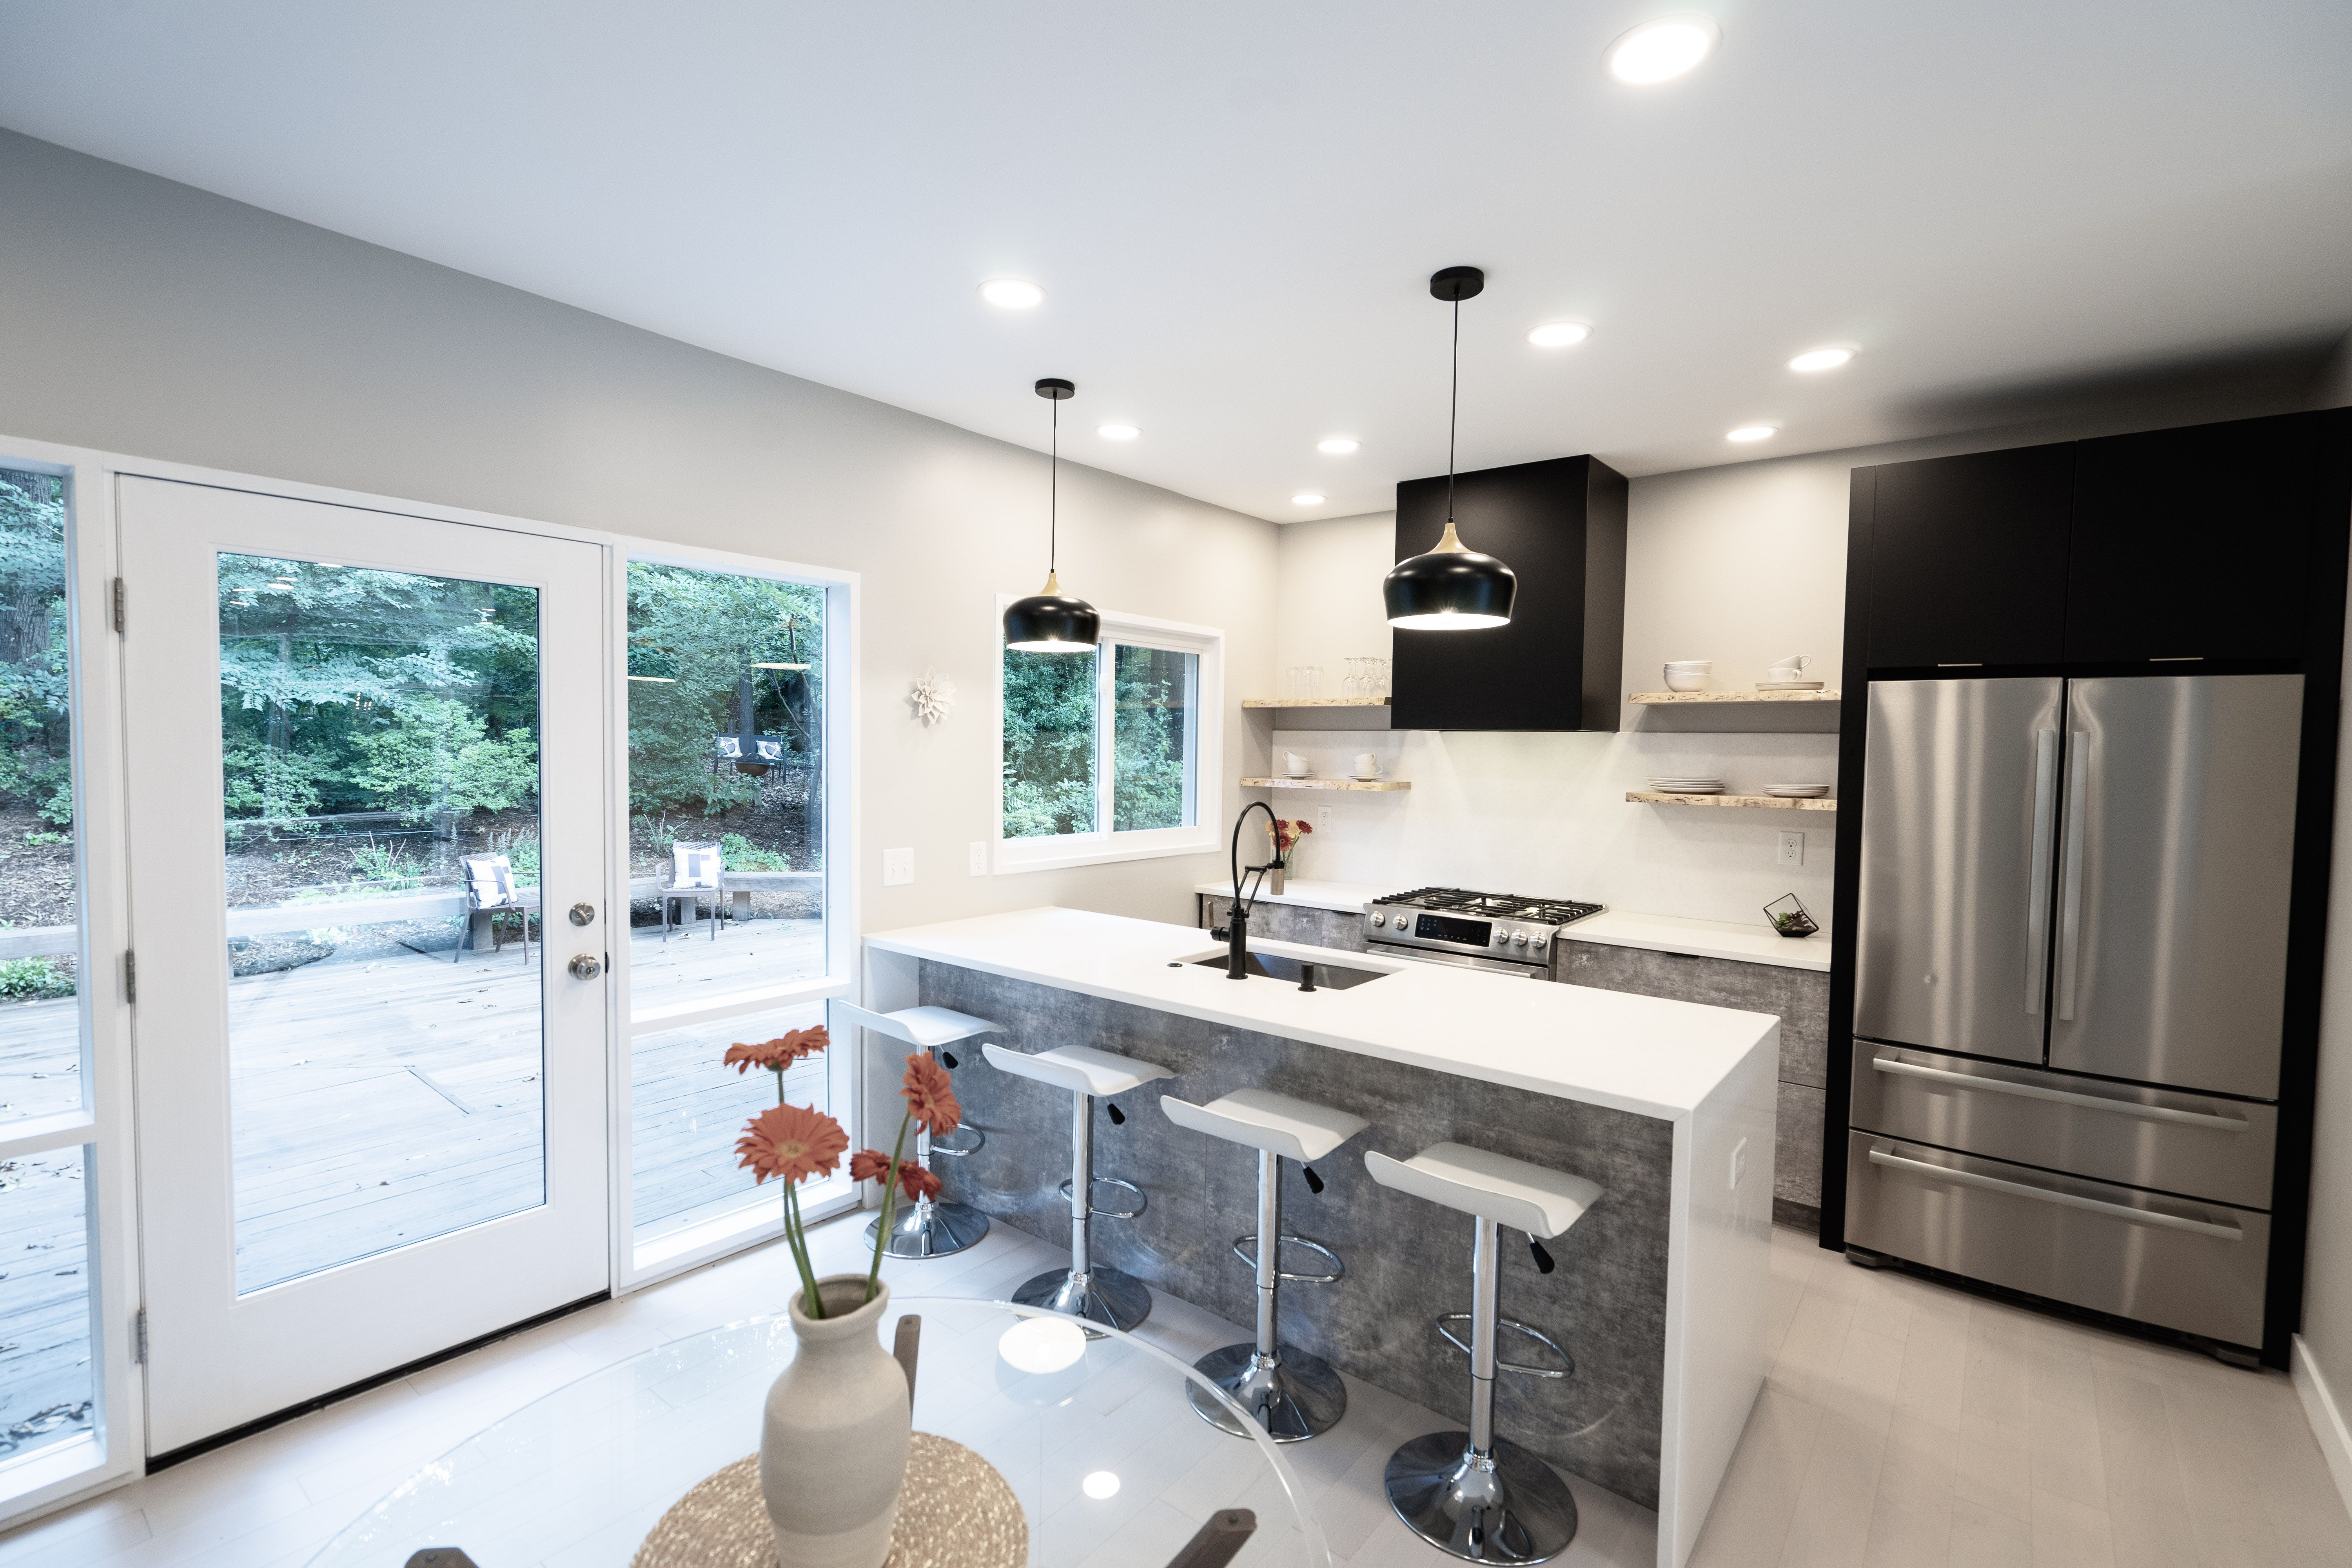 Kitchen Design In Alexandria Va Kitchen Bath Remodeling Cabinets Usa Cabinet Store Country Kitchen Decor Kitchen Decor Traditional Kitchen Design